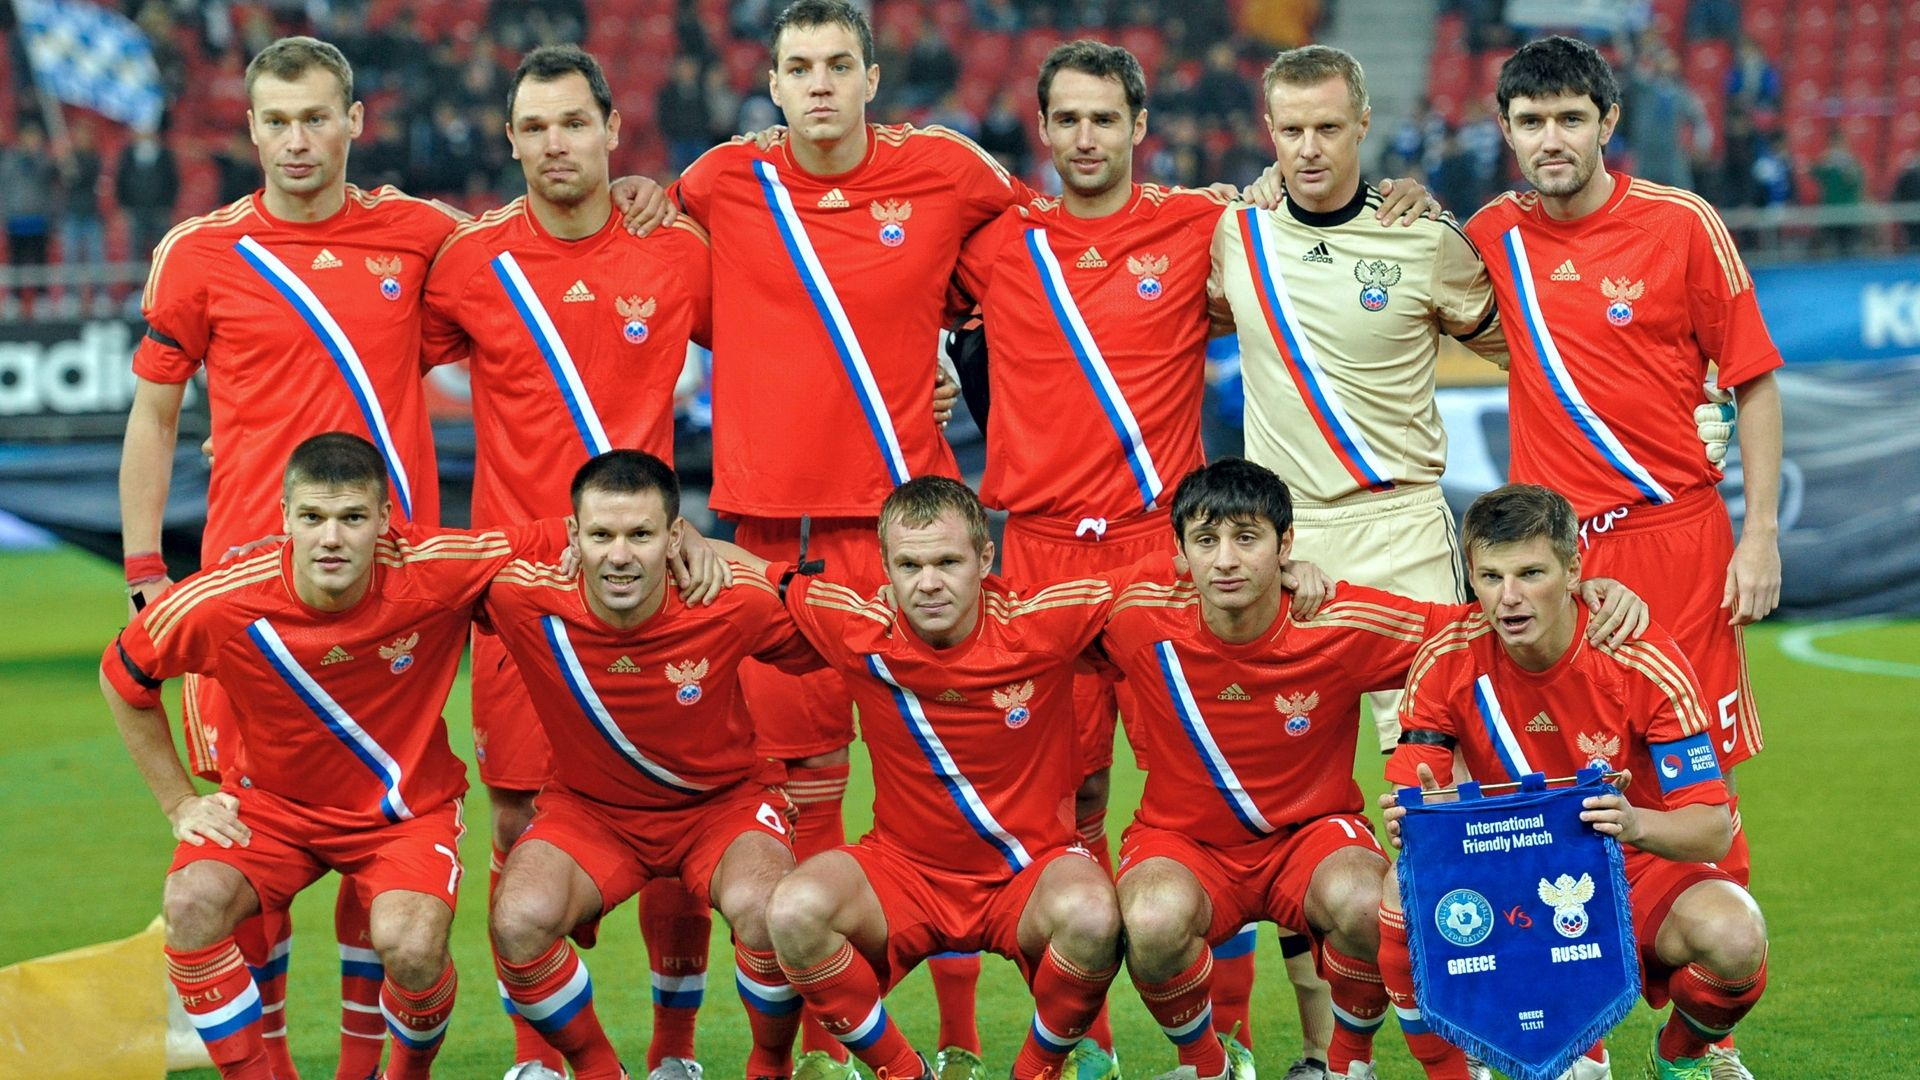 Russia Football Team World Cup 2014 Fifa World Cup Schedule National Football Teams Uefa European Championship